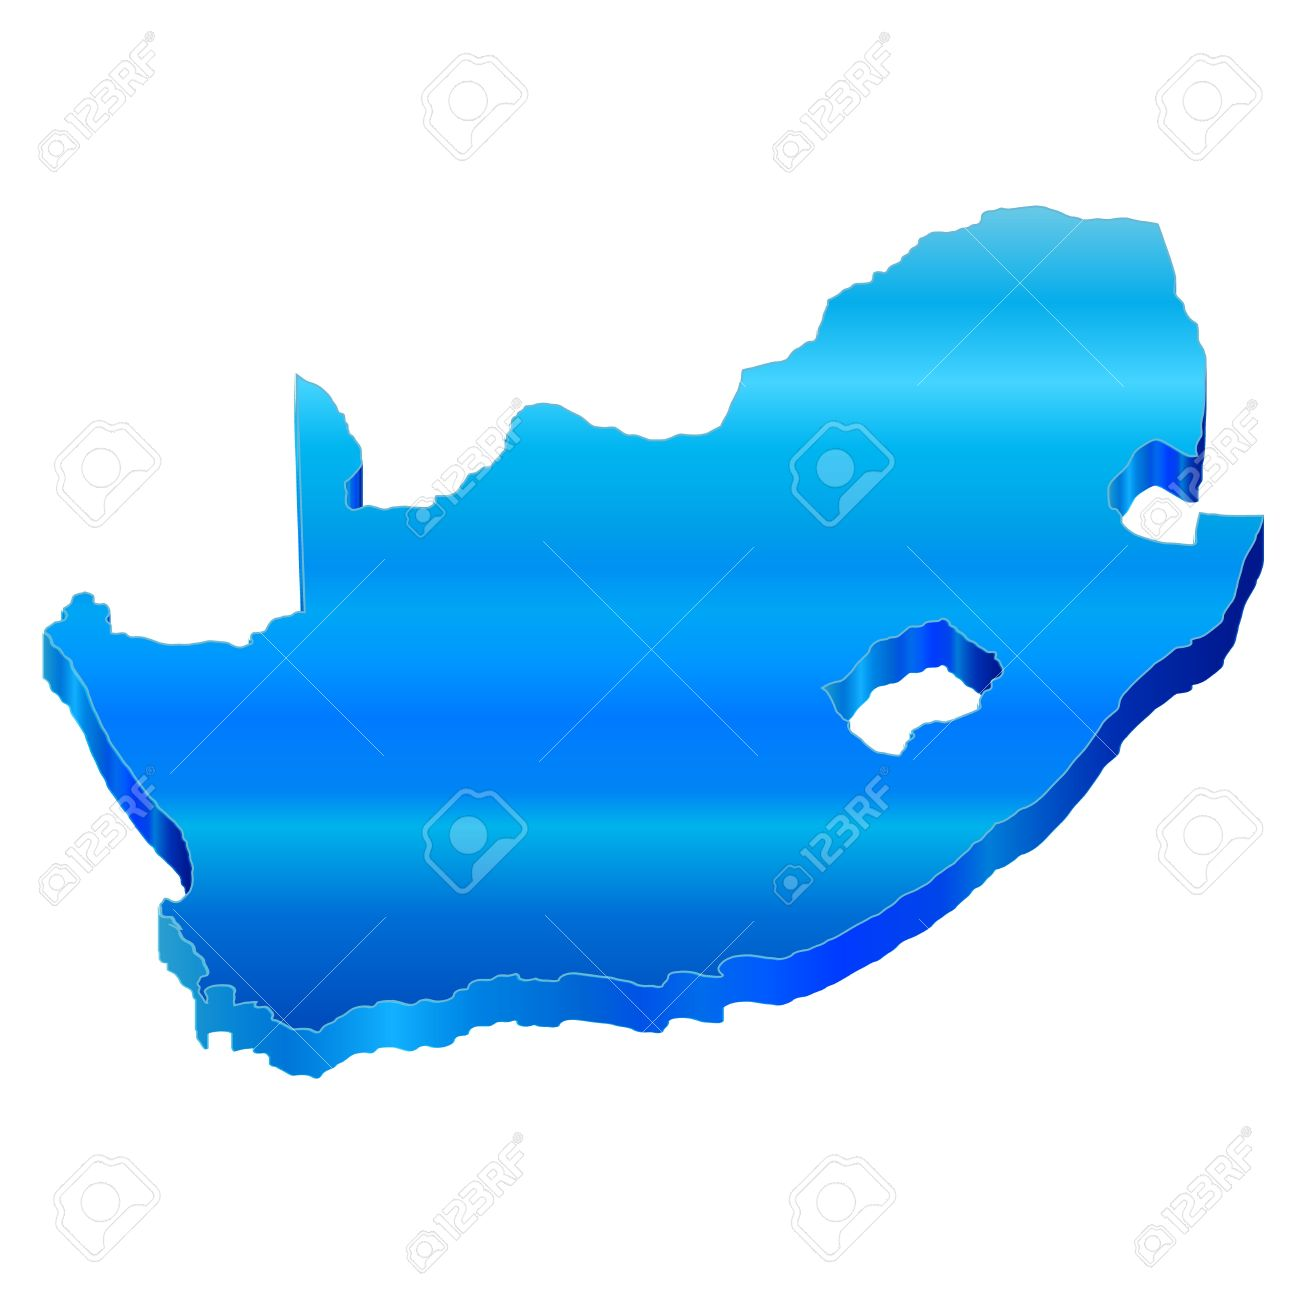 3D Map Of South Africa Royalty Free